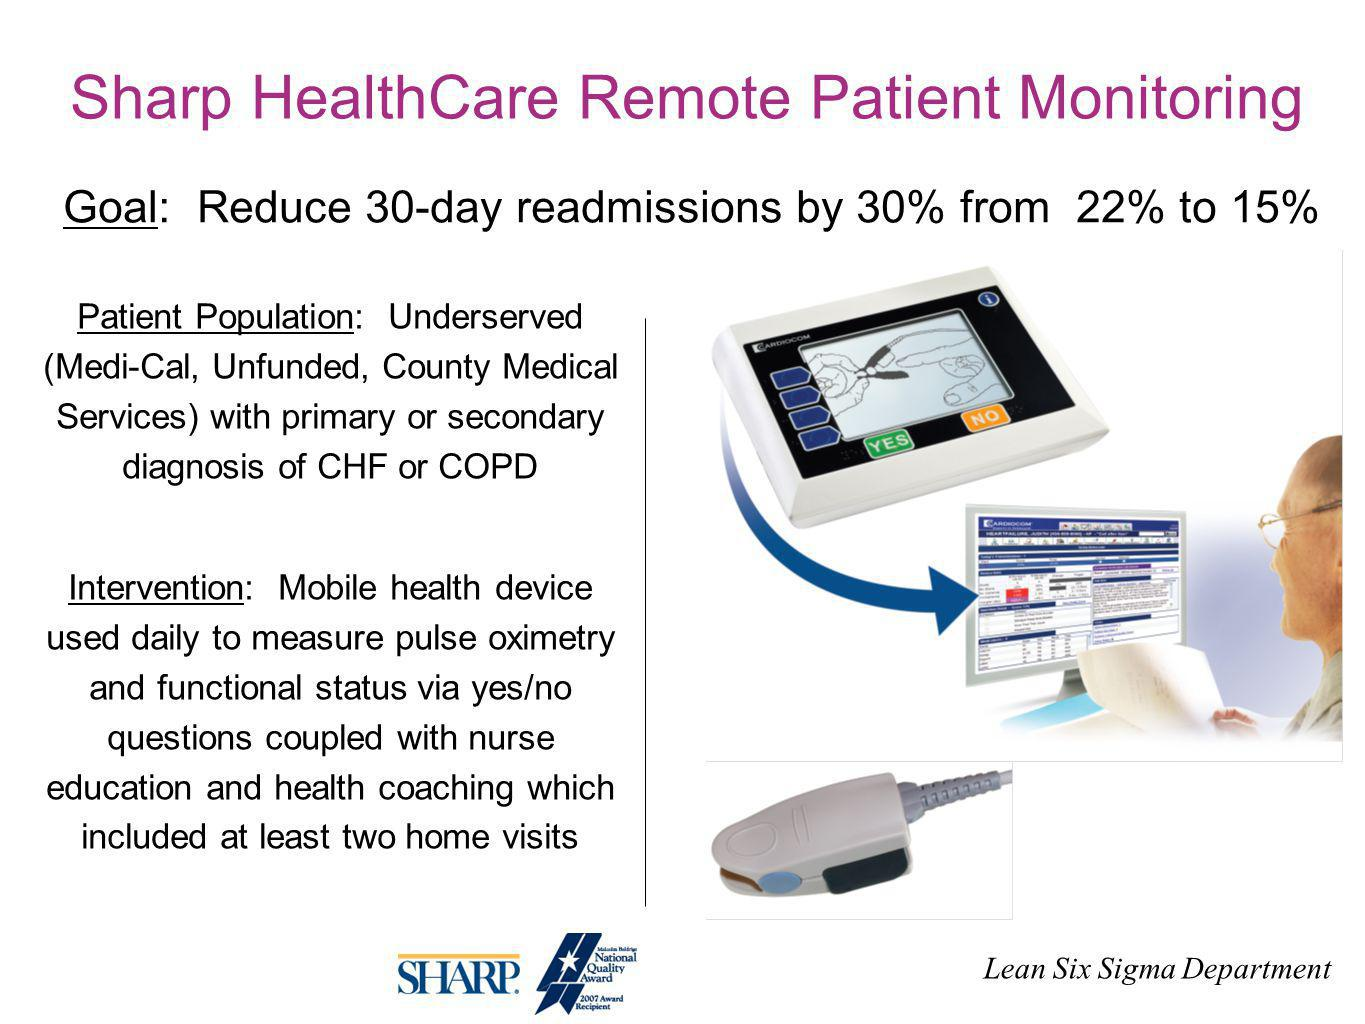 Goal: Reduce 30-day readmissions by 30% from 22% to 15% Patient Population: Underserved (Medi-Cal, Unfunded, County Medical Services) with primary or secondary diagnosis of CHF or COPD Intervention: Mobile health device used daily to measure pulse oximetry and functional status via yes/no questions coupled with nurse education and health coaching which included at least two home visits Sharp HealthCare Remote Patient Monitoring Lean Six Sigma Department